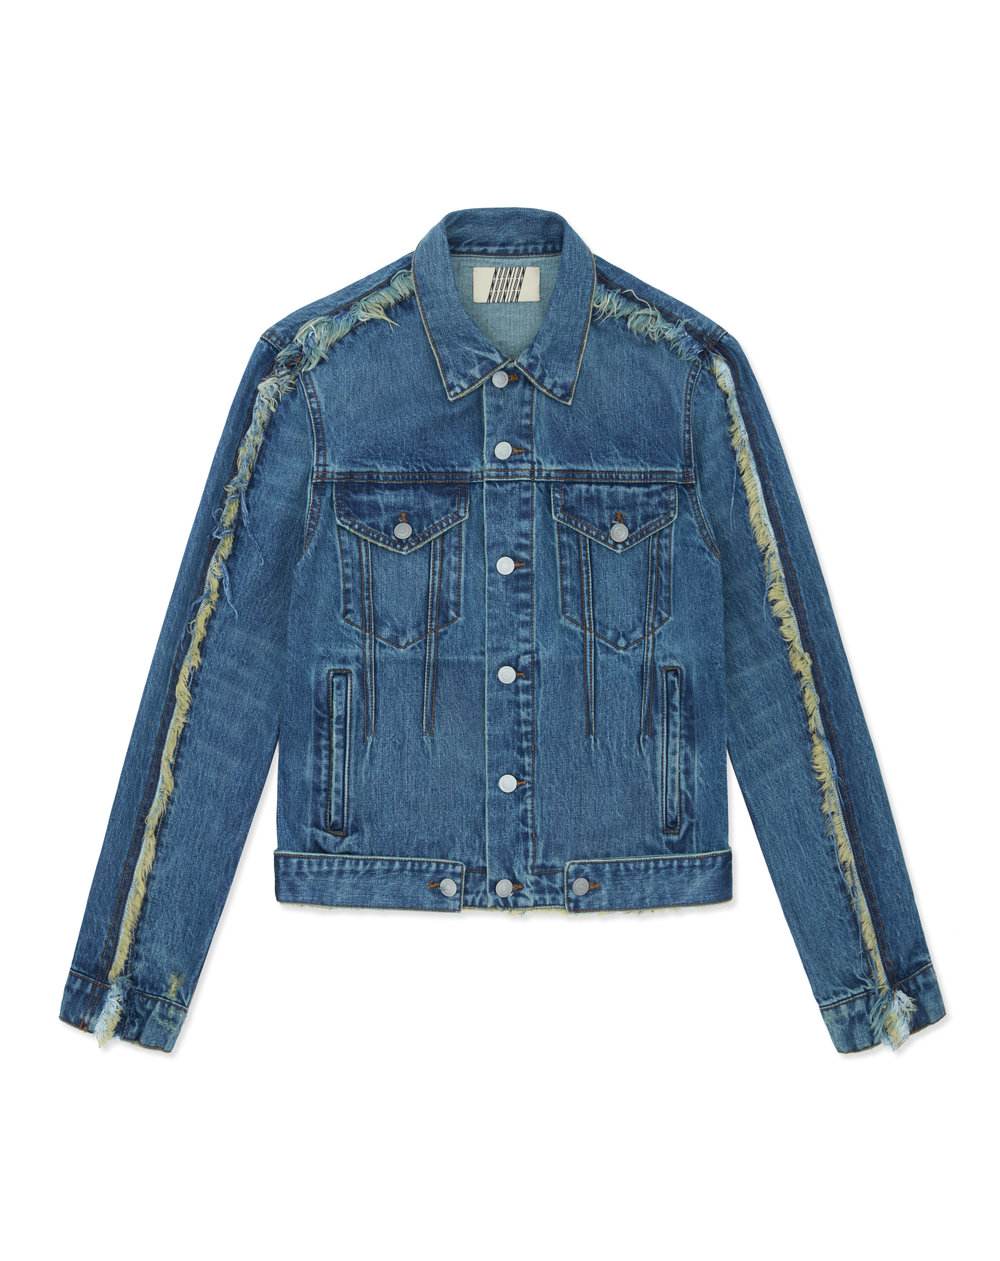 C2-O-02_Fringe sleeve denim jacket_01.jpg